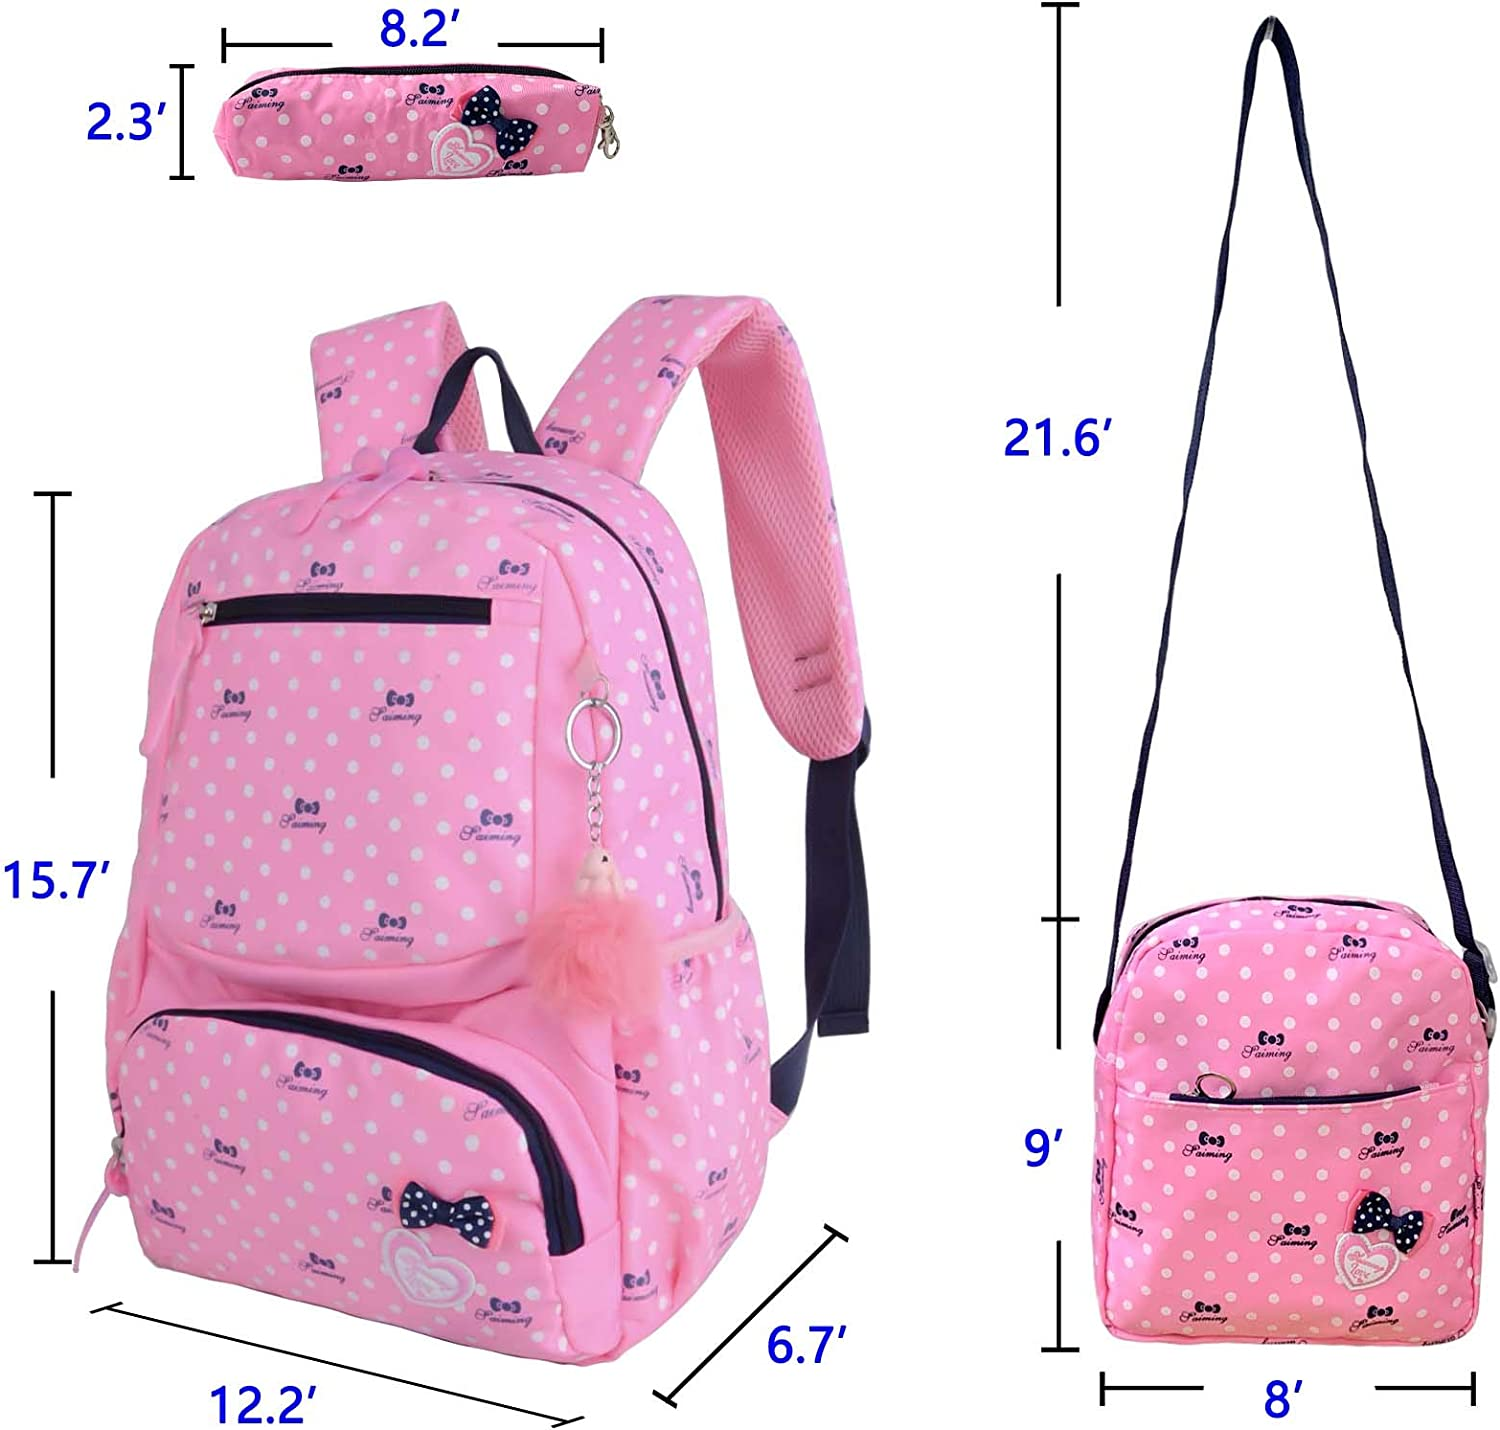 Pink Qiuhome School Backpack for Girls with Shoulder Bag Pencil Case 3 in 1 Set Primary Schoolbag